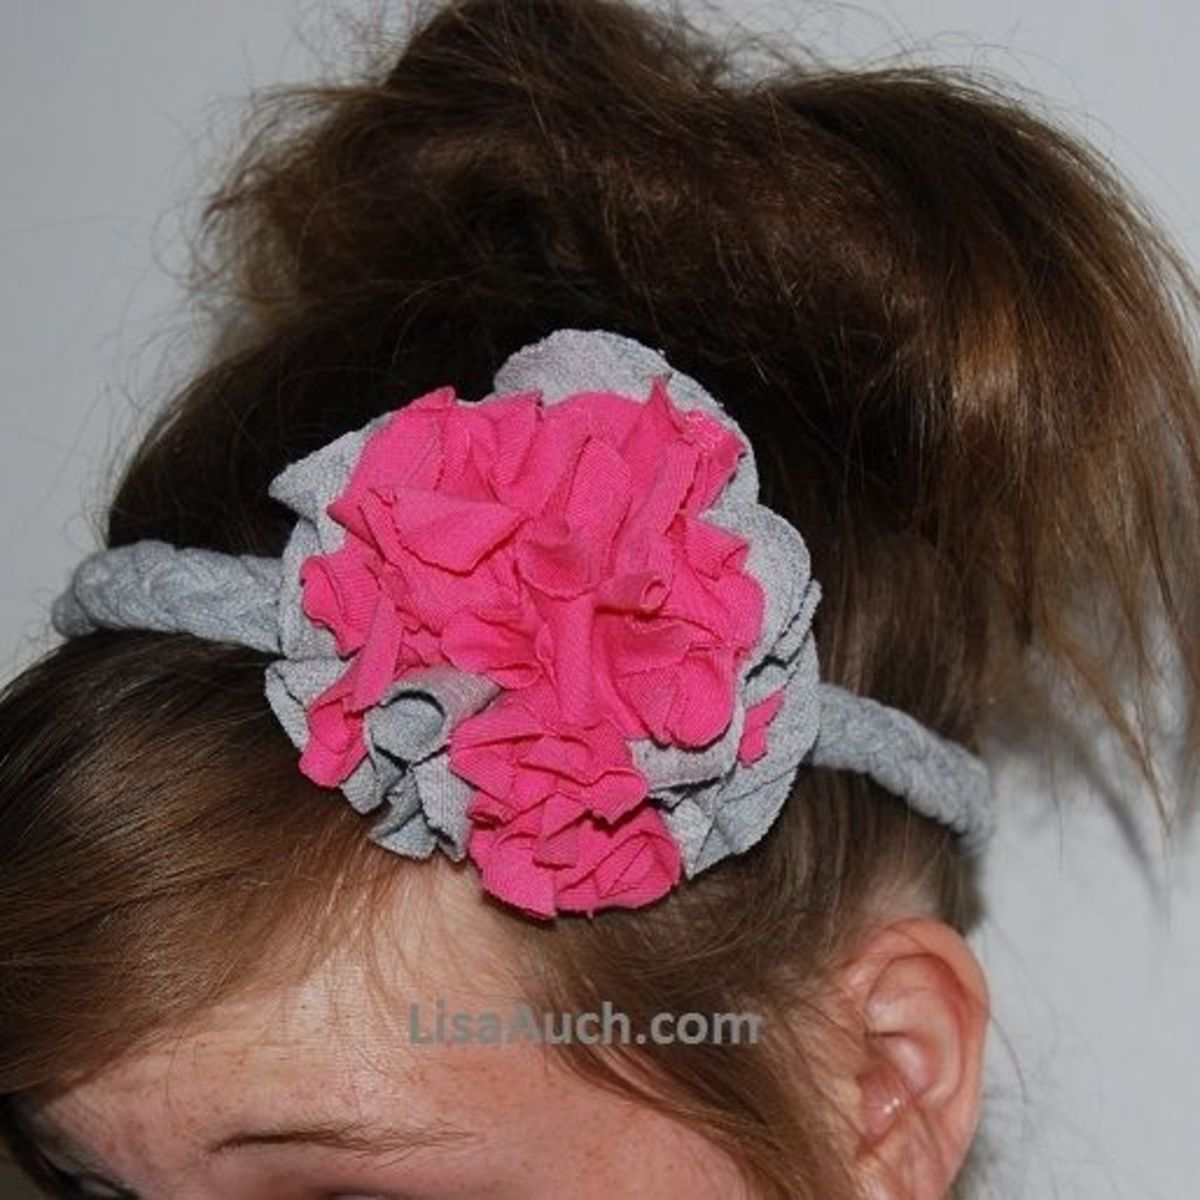 Make your own fabric headbands